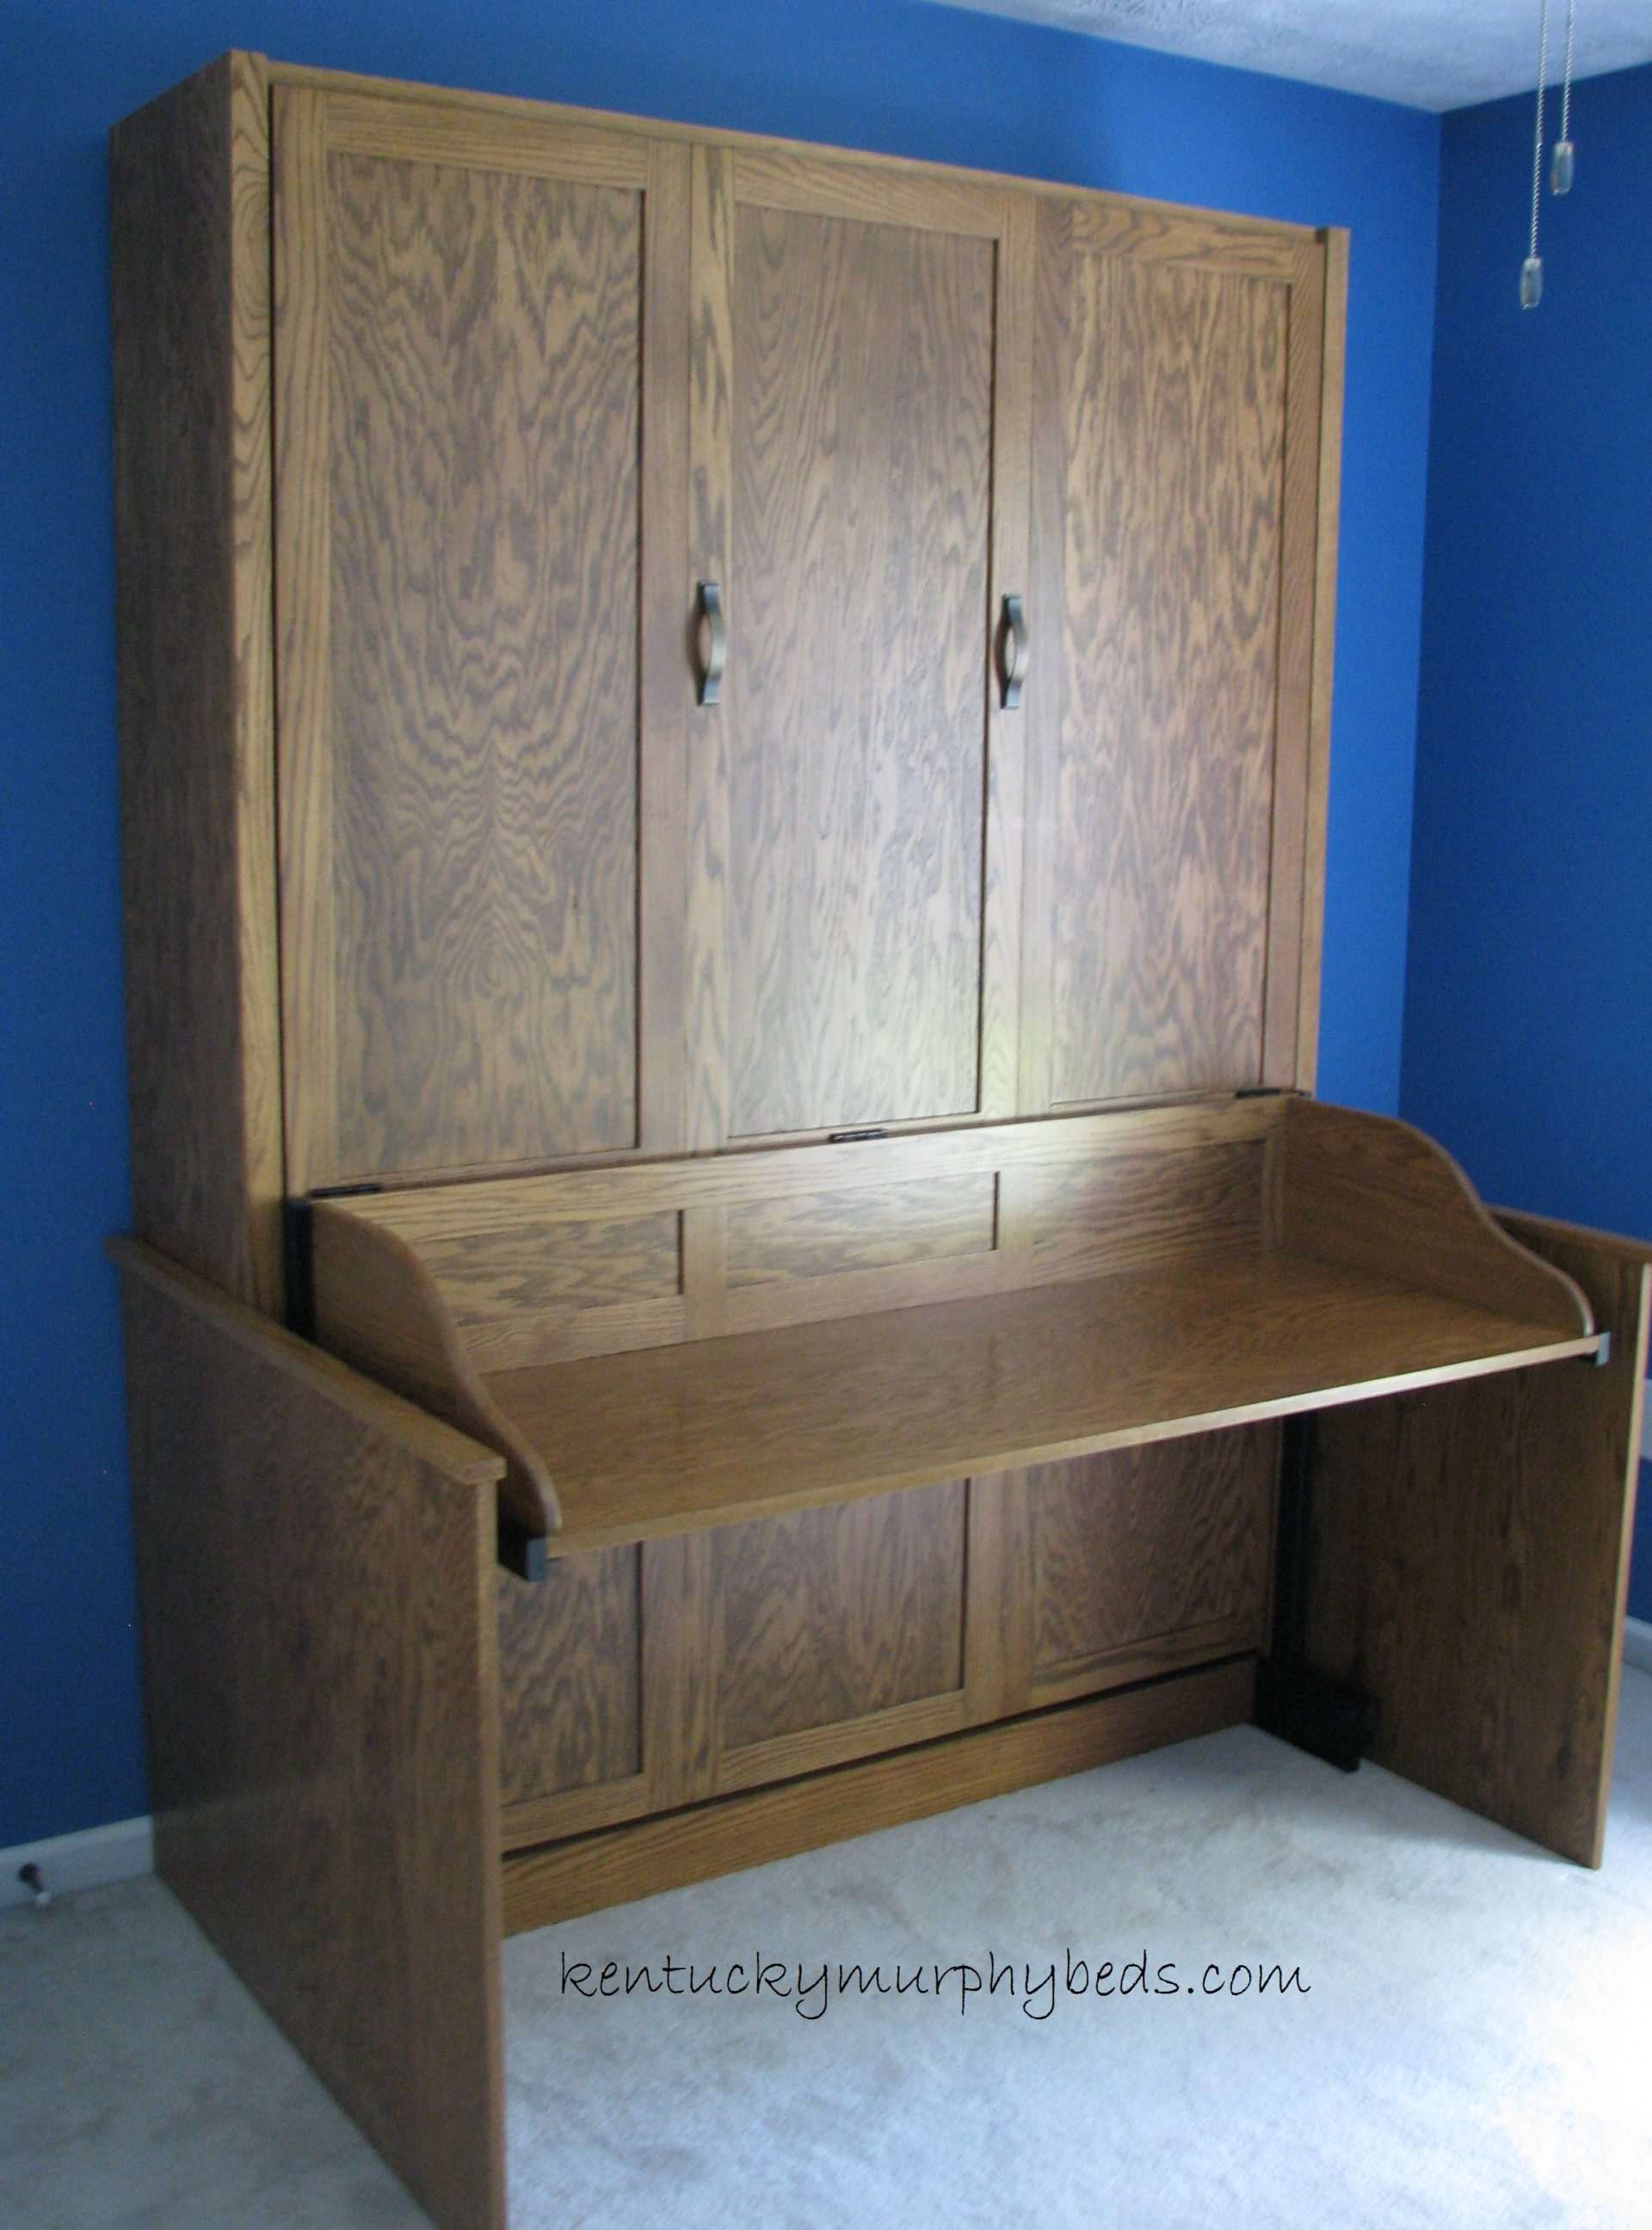 ak desk panel door Murphy bed, full size